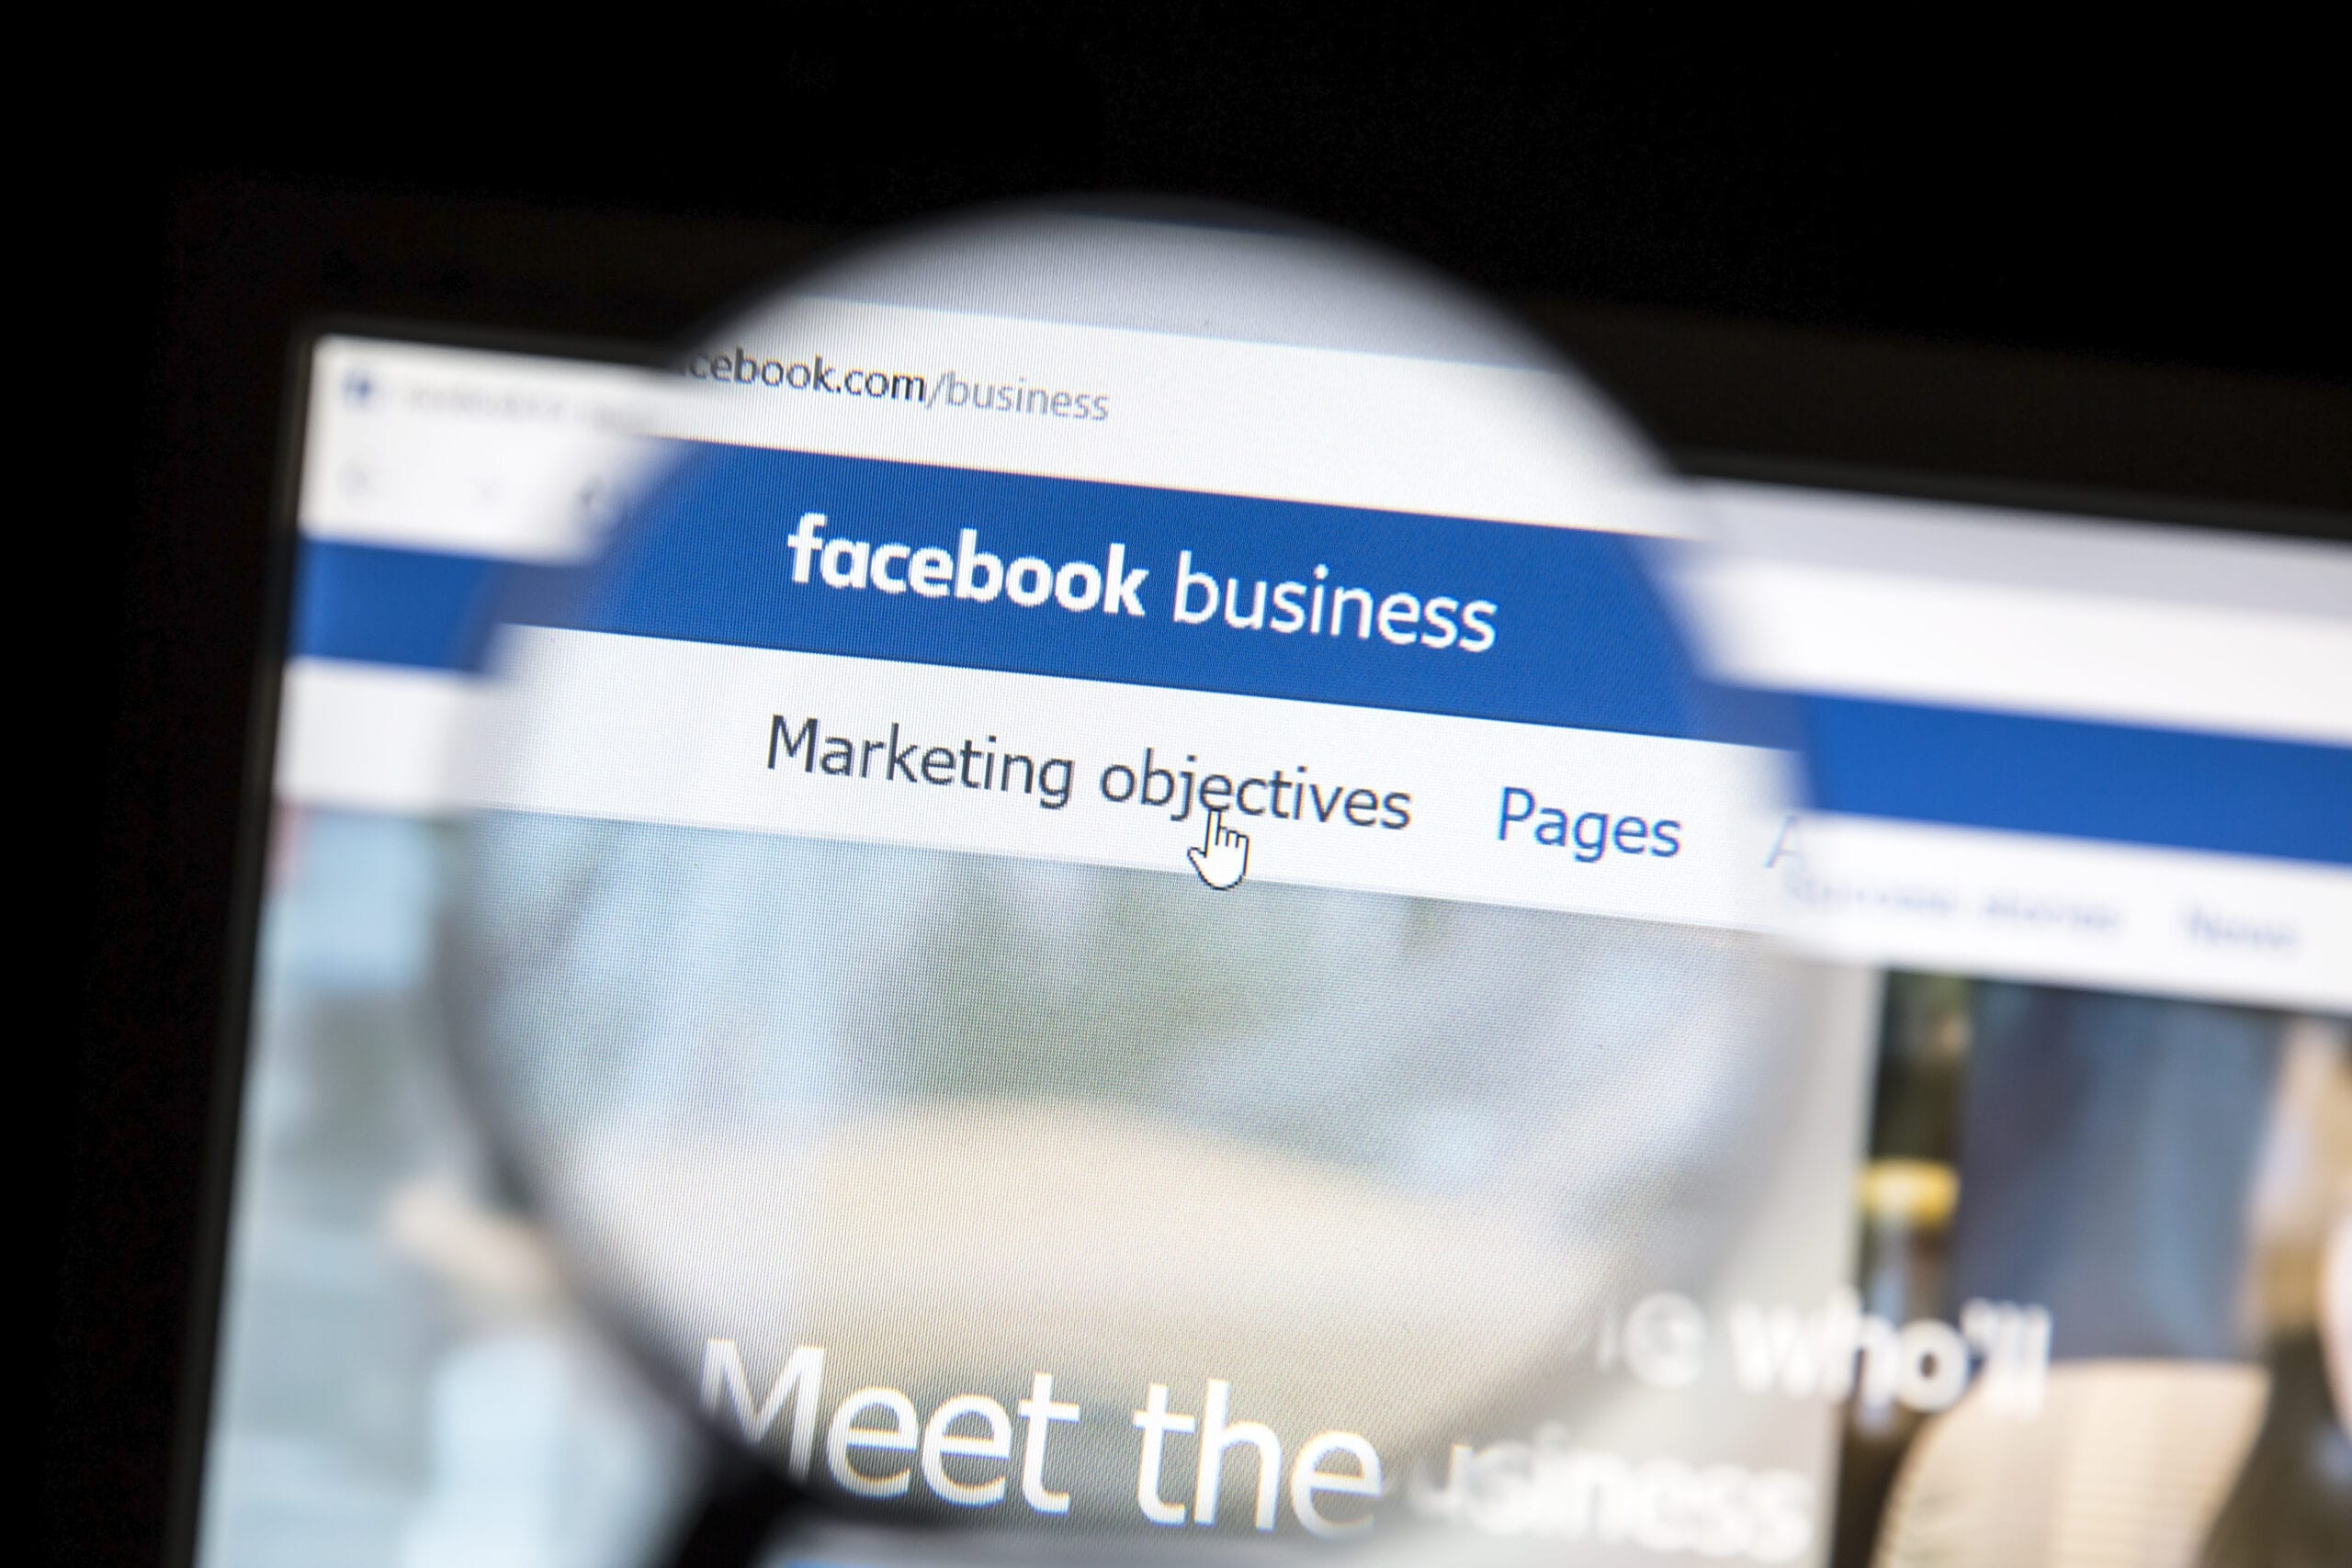 photo illustrating concept of Facebook business marketing